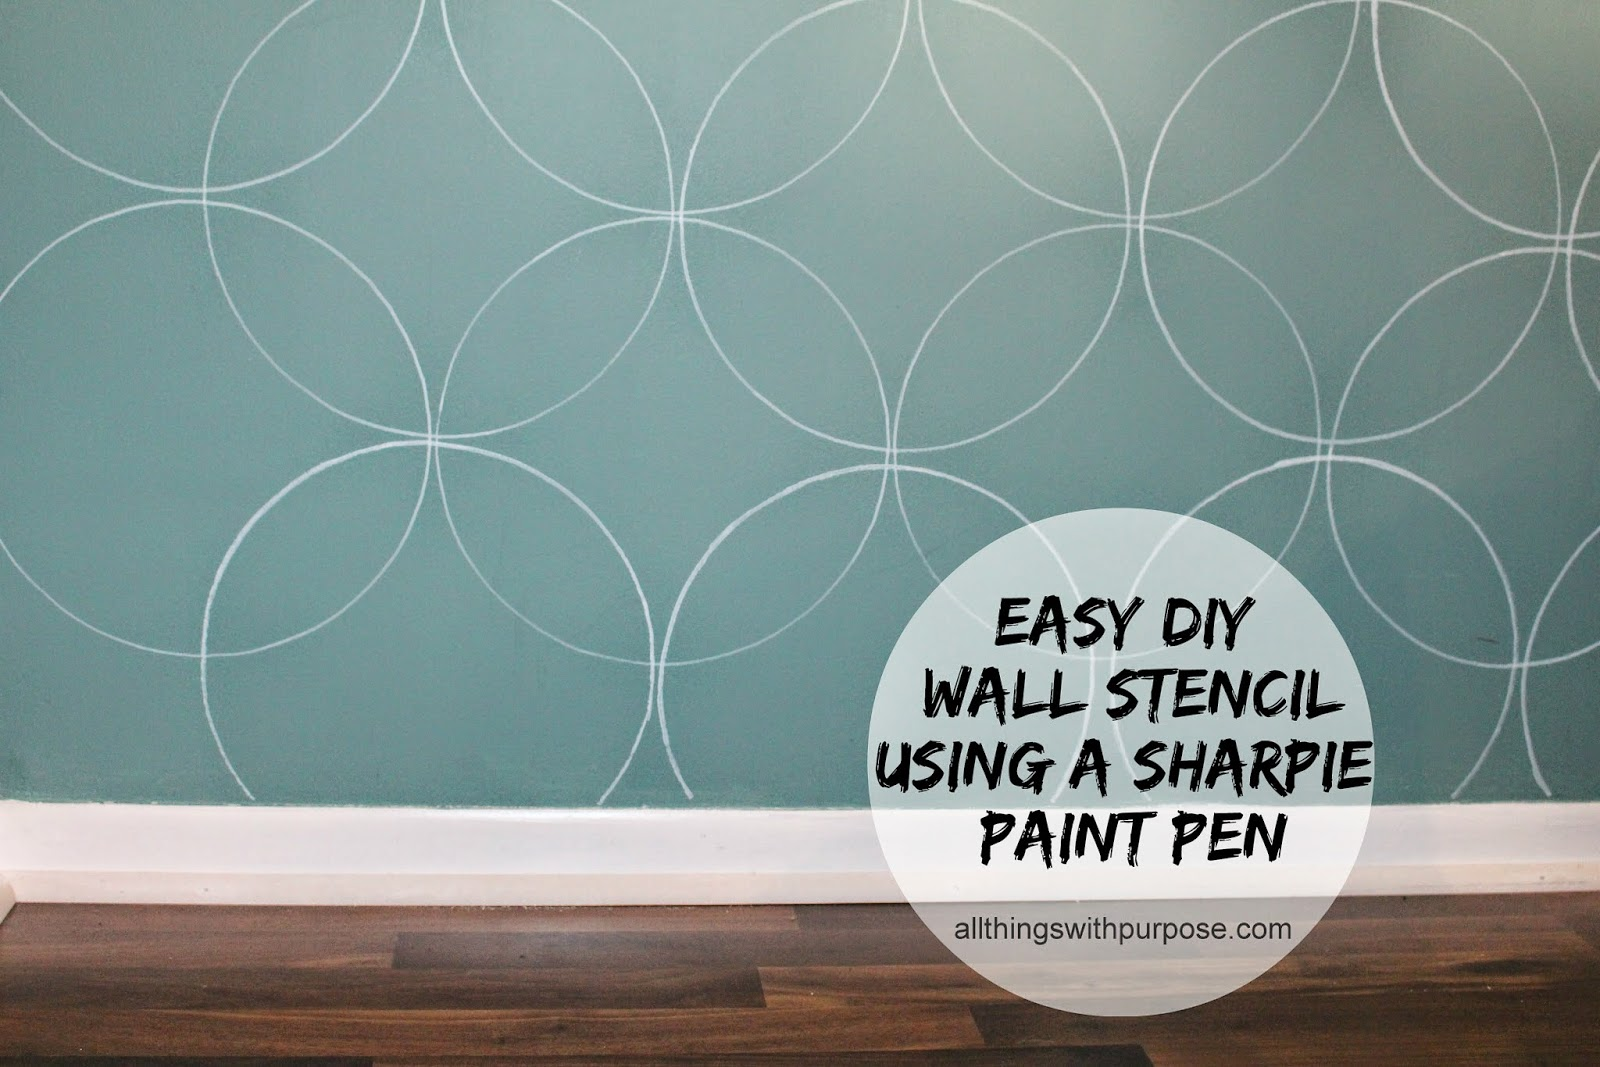 Diy stencil wall images home wall decoration ideas easy diy wall stencil with a paint pen amipublicfo images amipublicfo Gallery